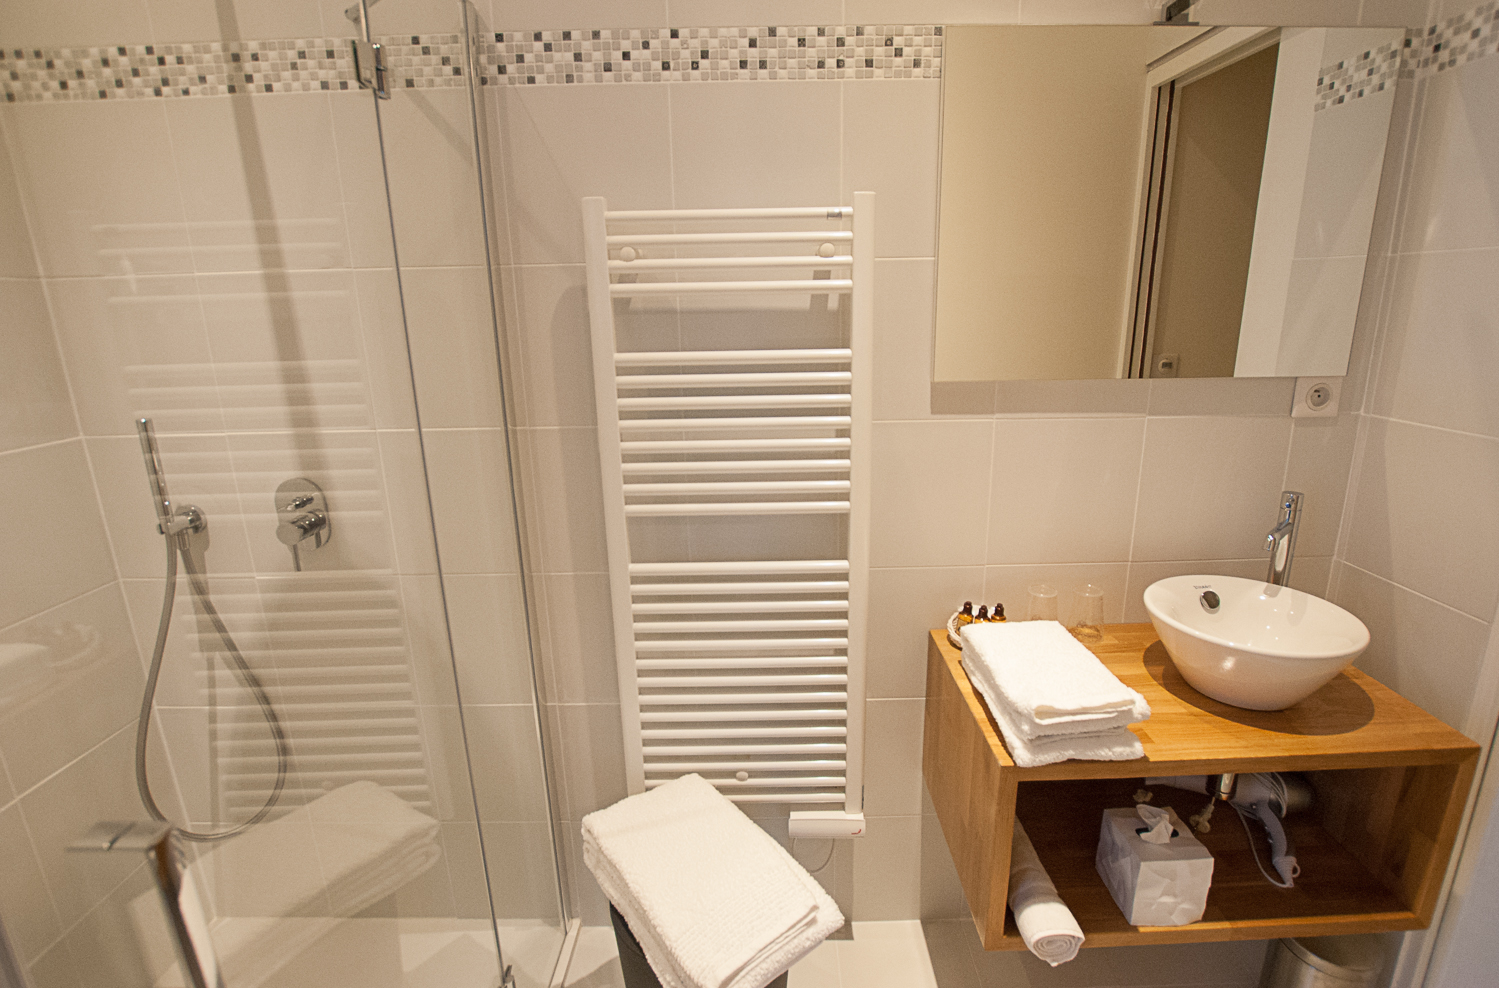 Chambre d 39 h tes en champagne ardenne troyes - Chambres d hotes a troyes ...